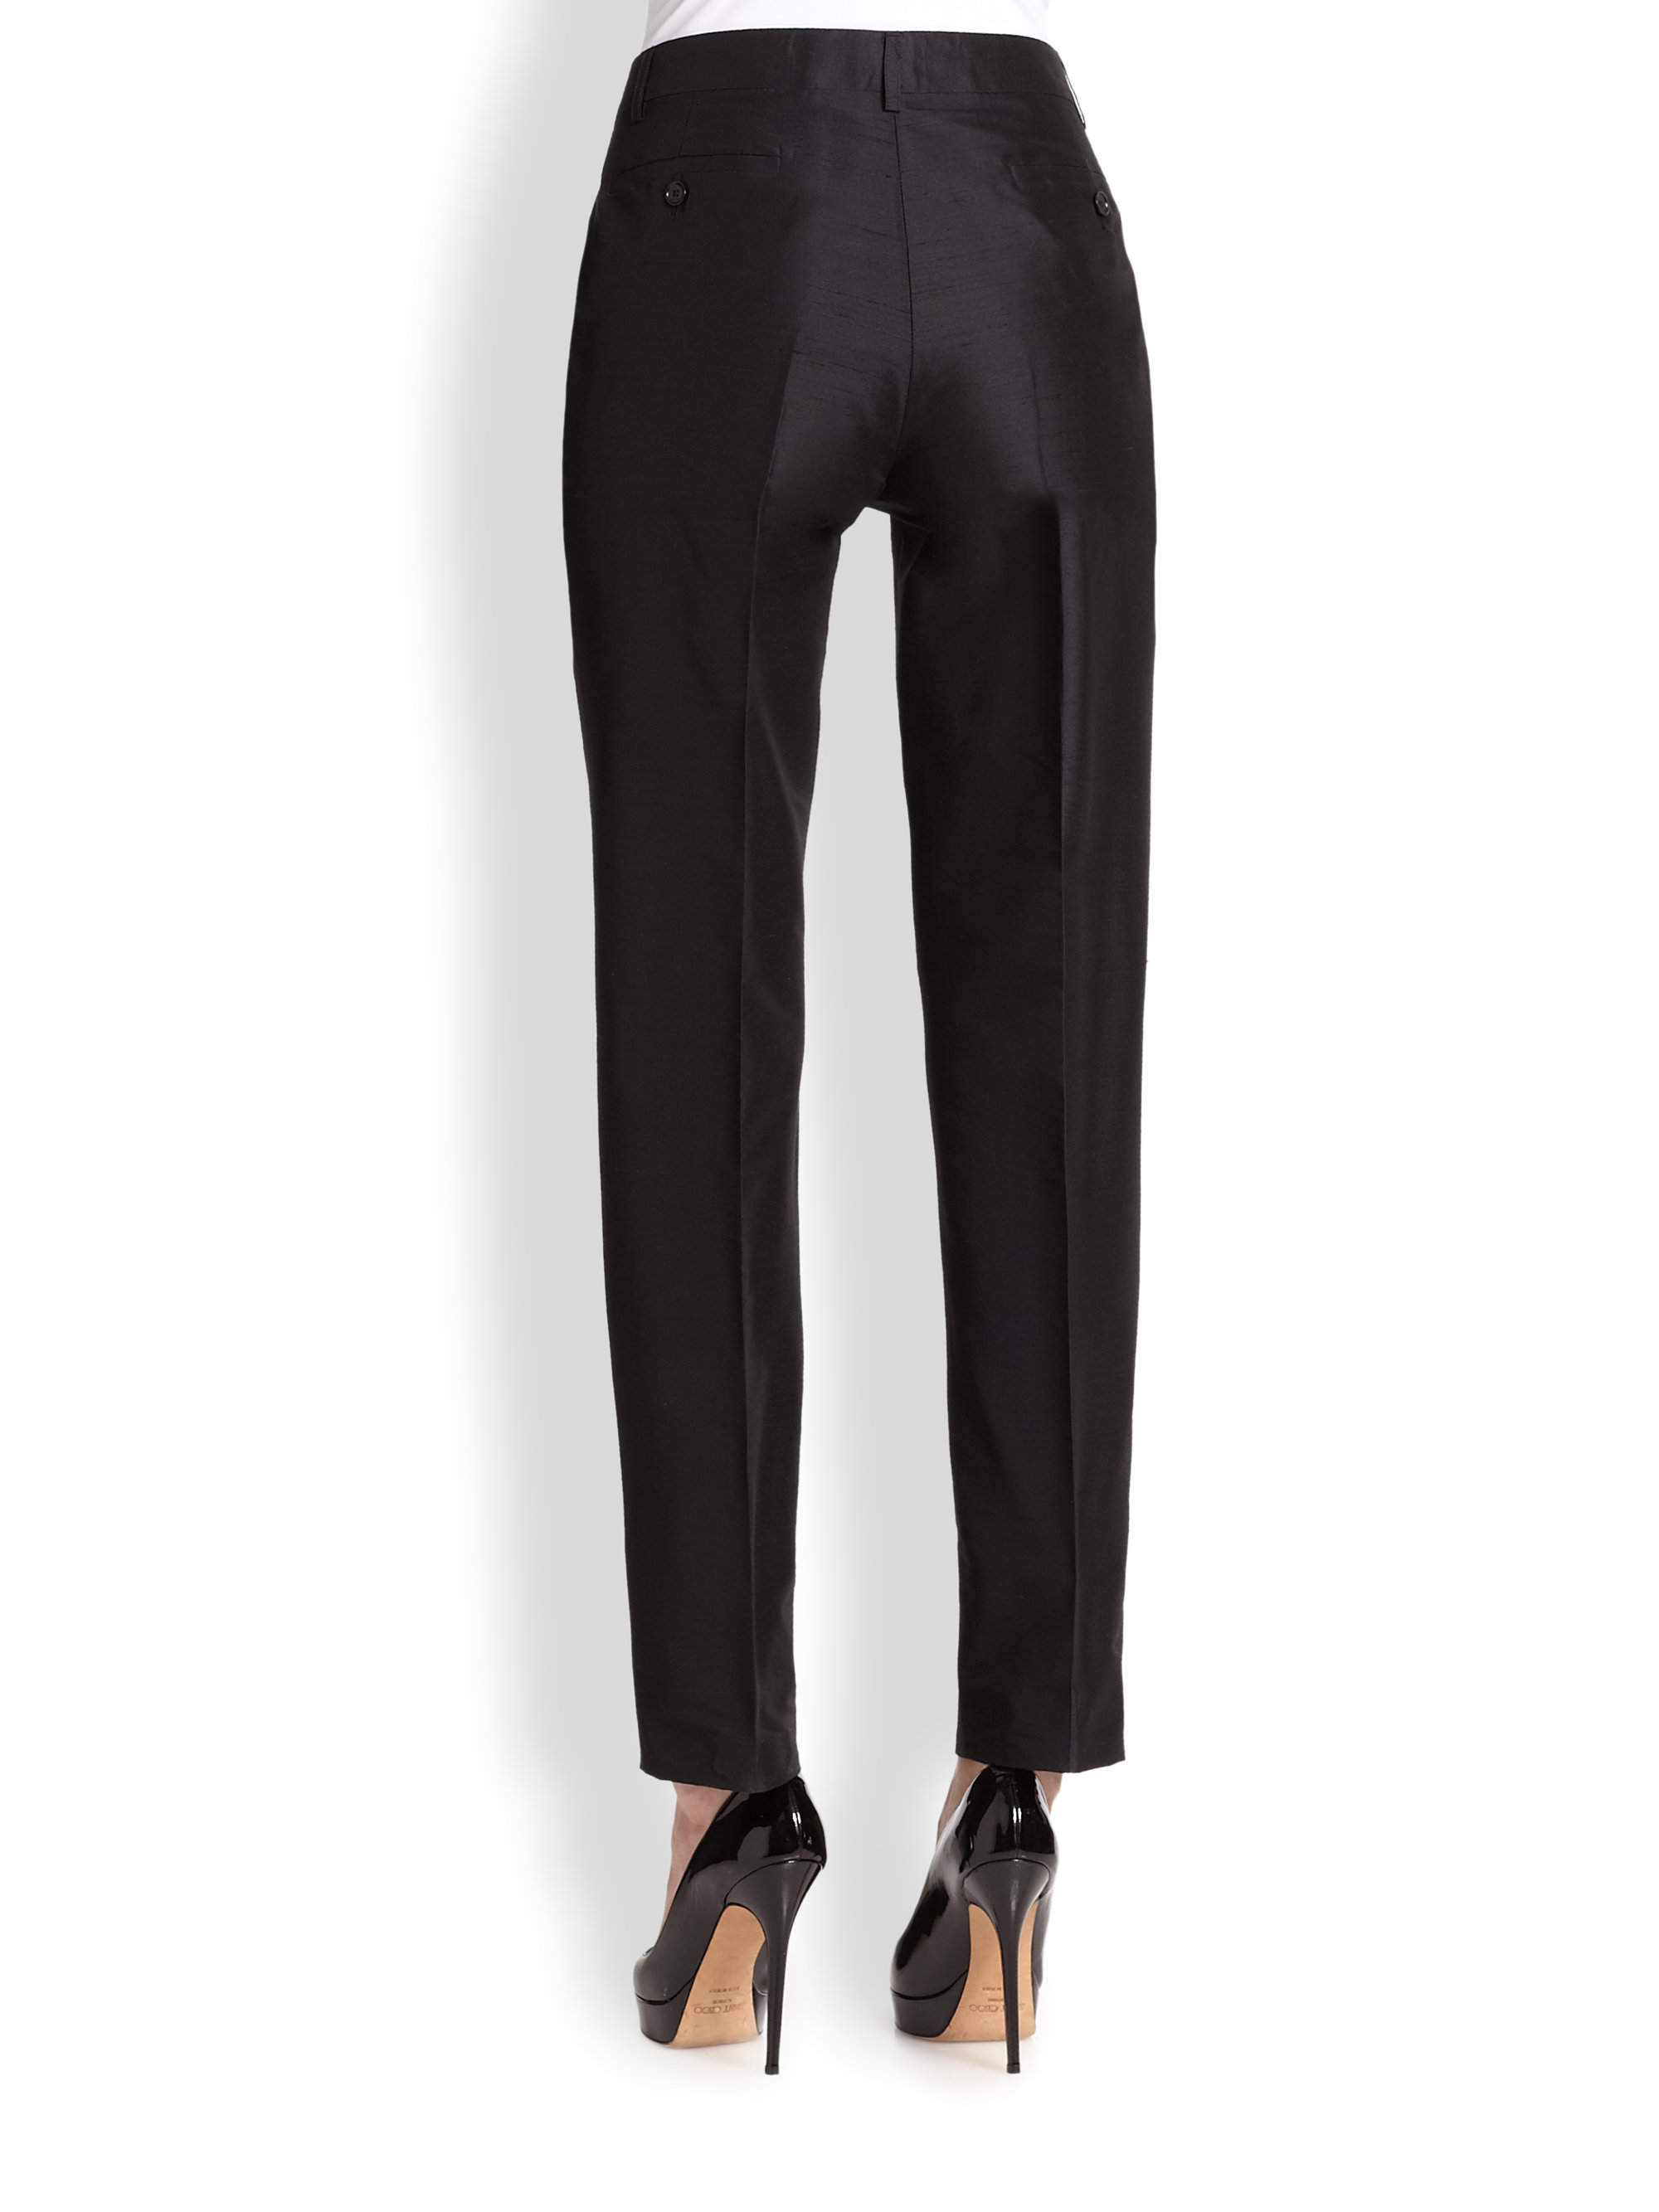 Etro Silk Shantung Pants in Black | Lyst